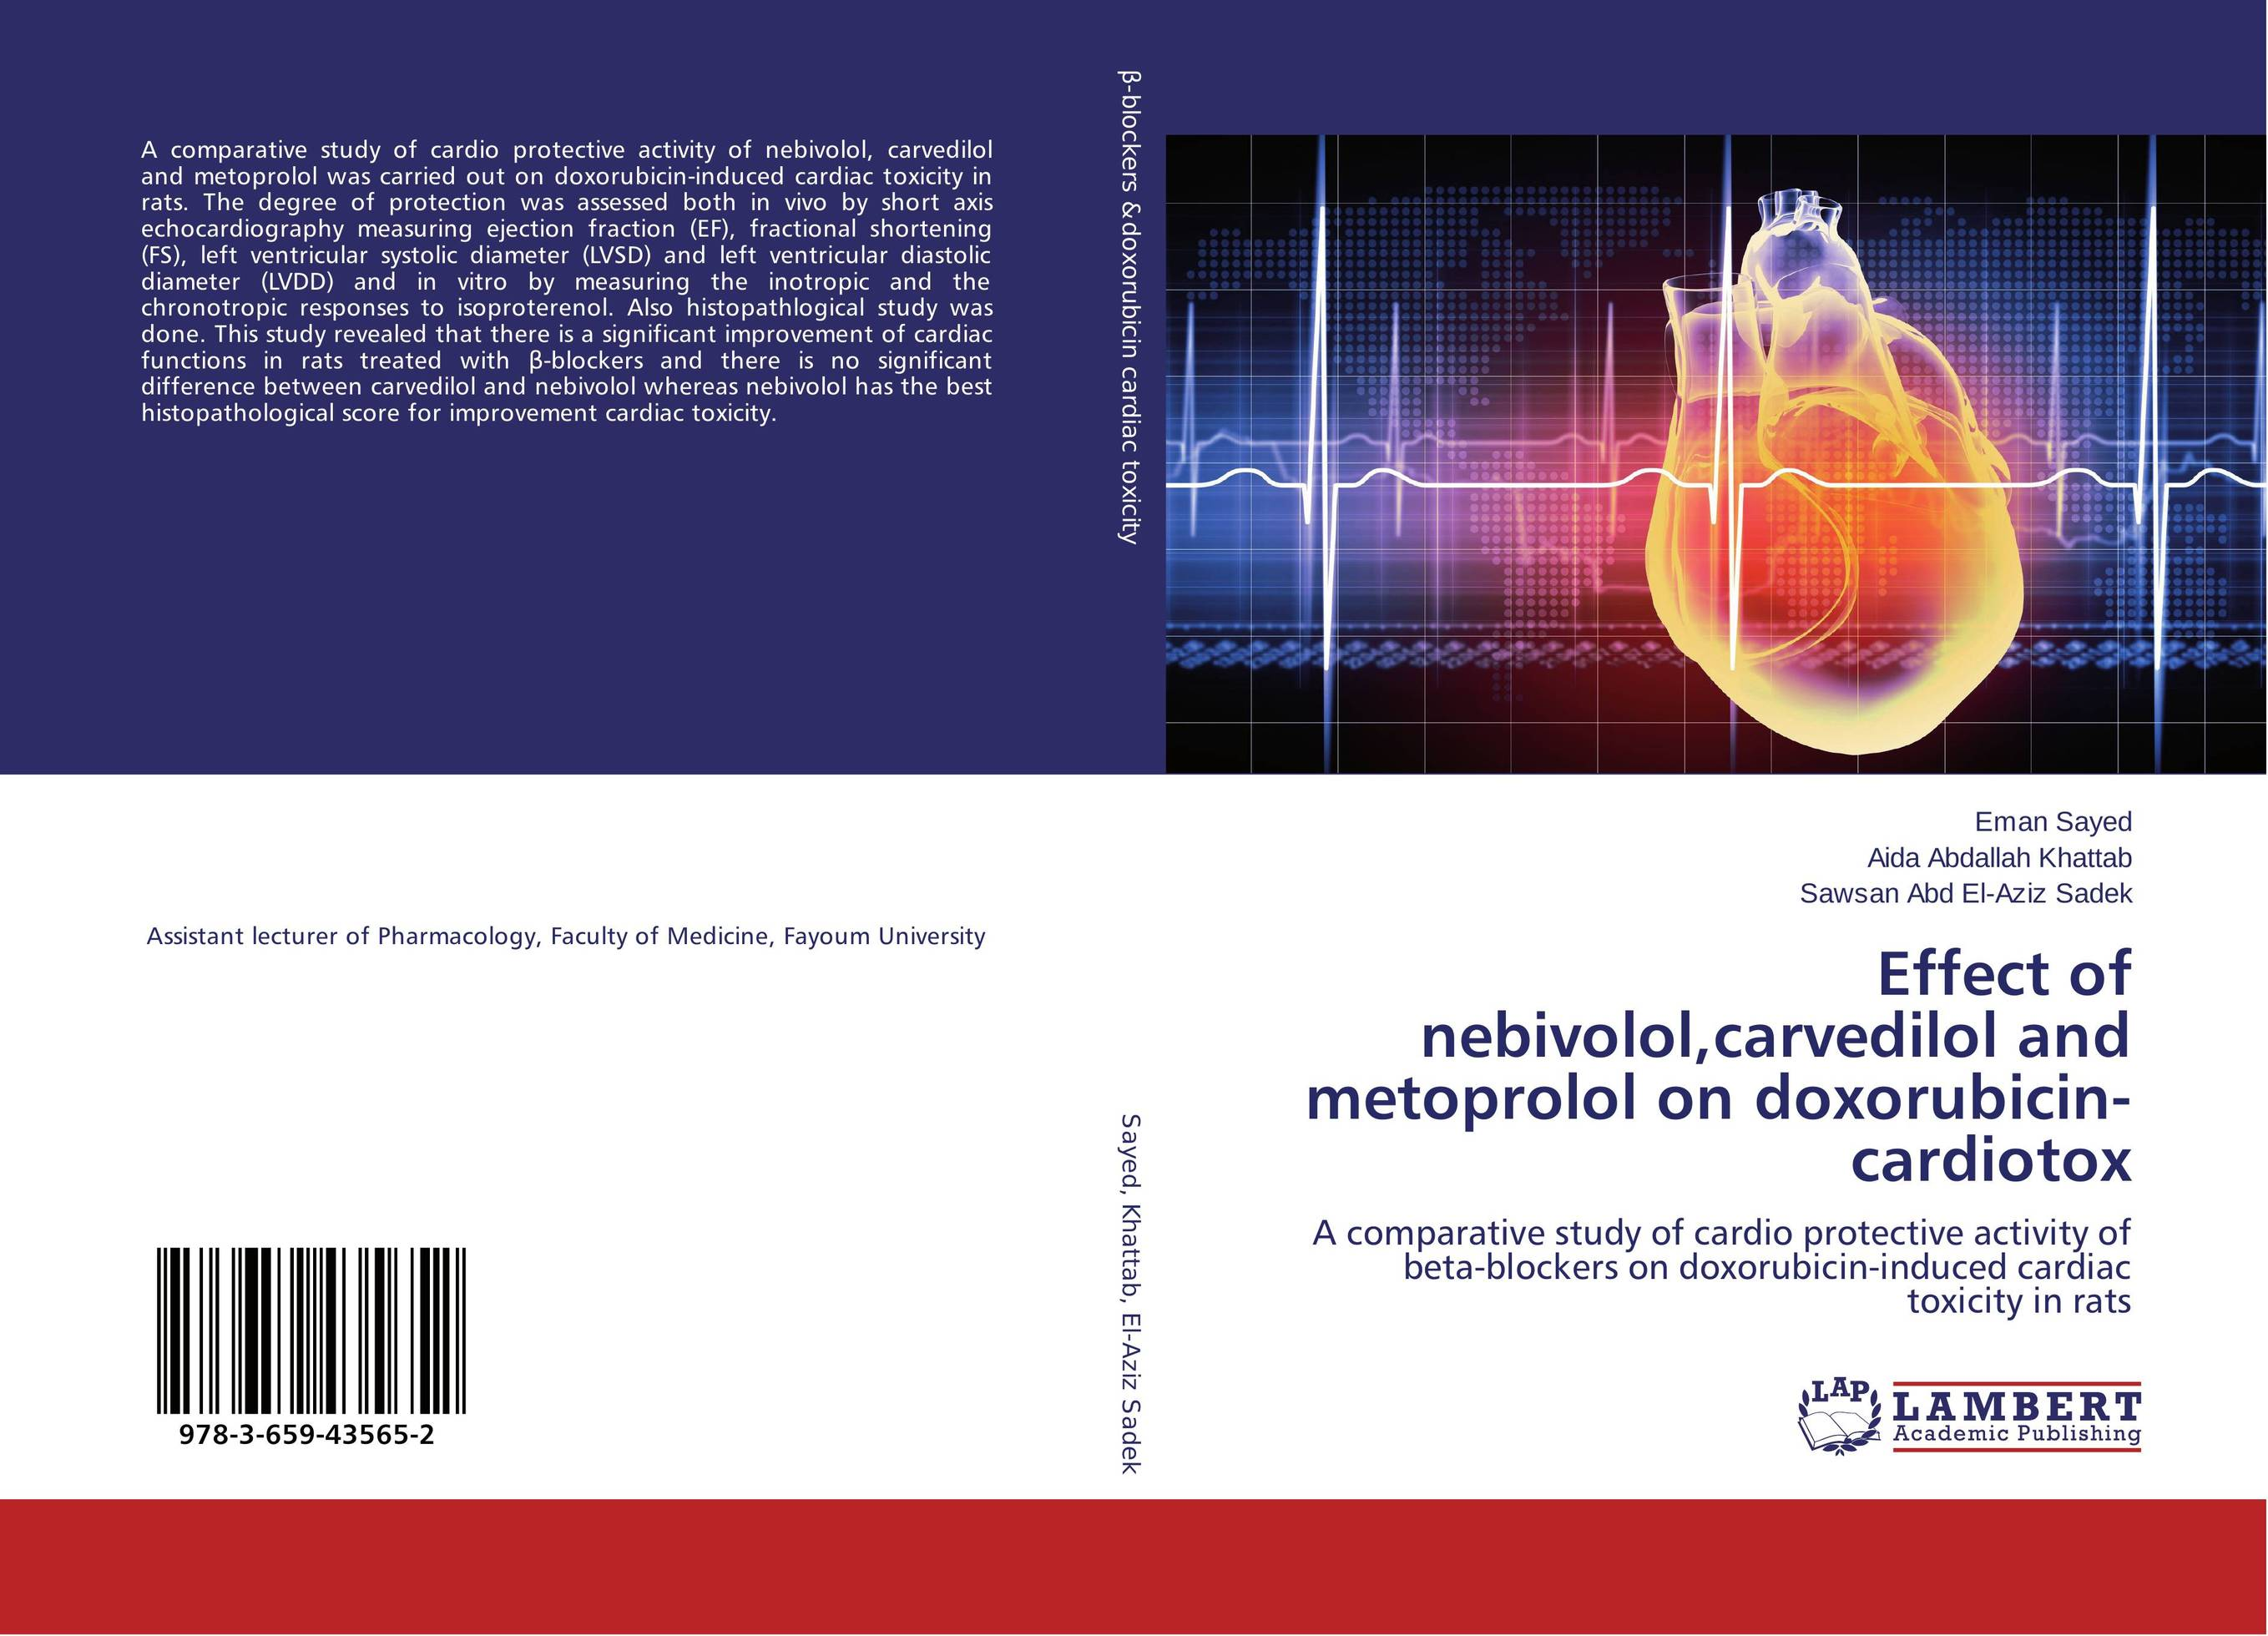 Effect of nebivolol,carvedilol and metoprolol on doxorubicin-cardiotox